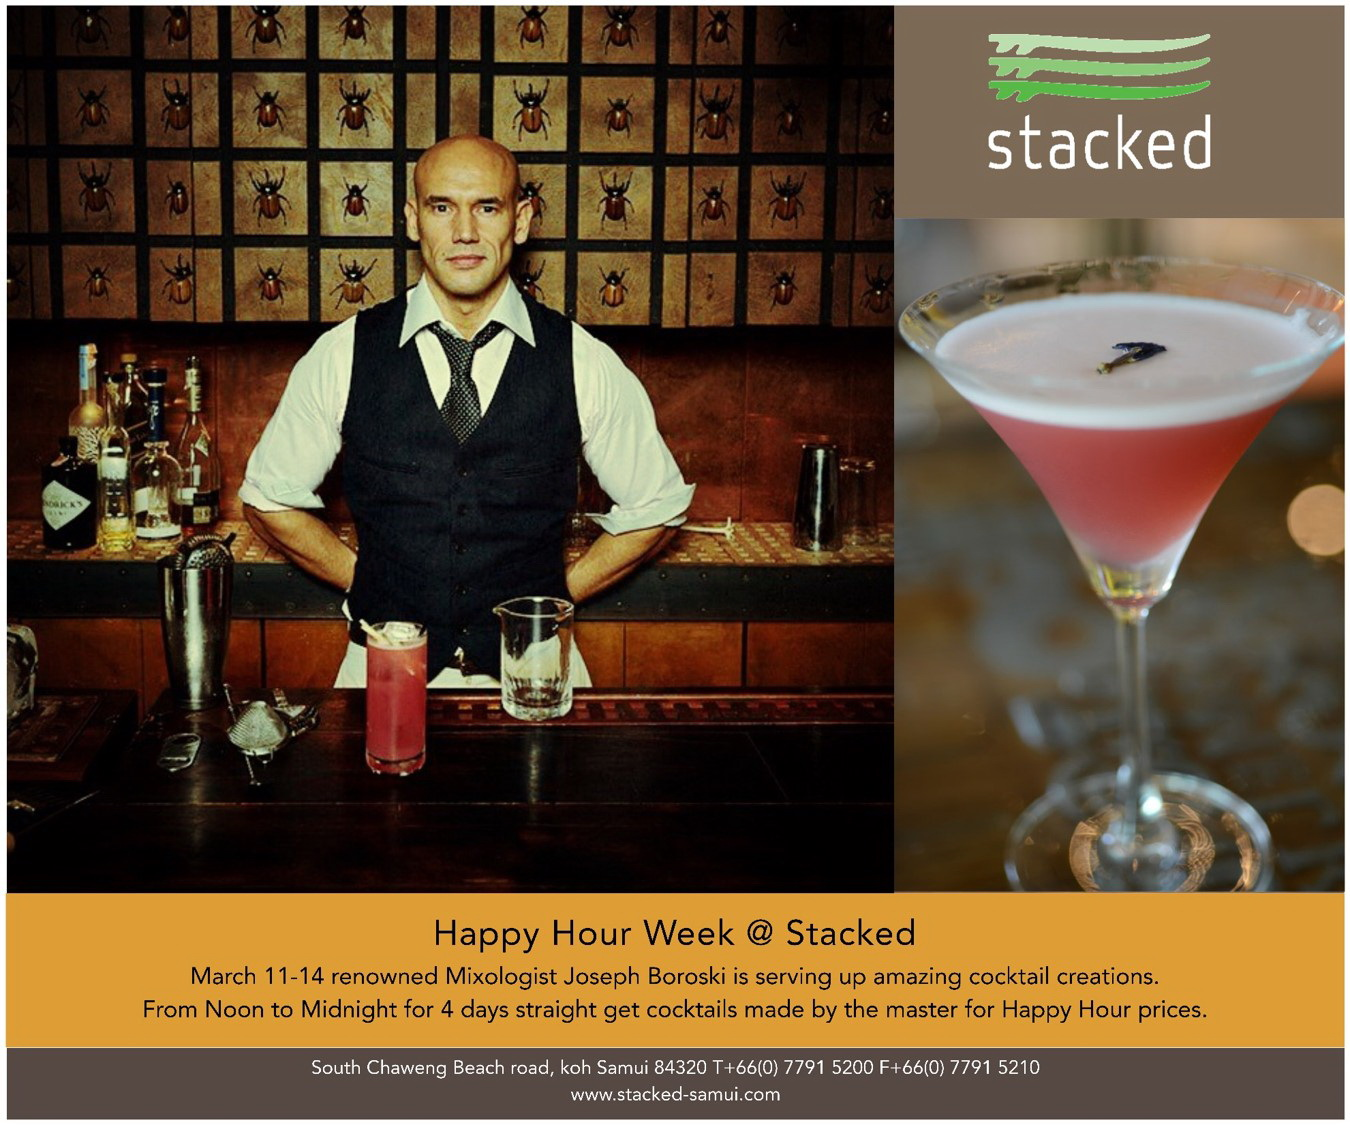 Happy Hour event at Stacked at Ozo March 11th – 14th with master Mixologist | Samui Times